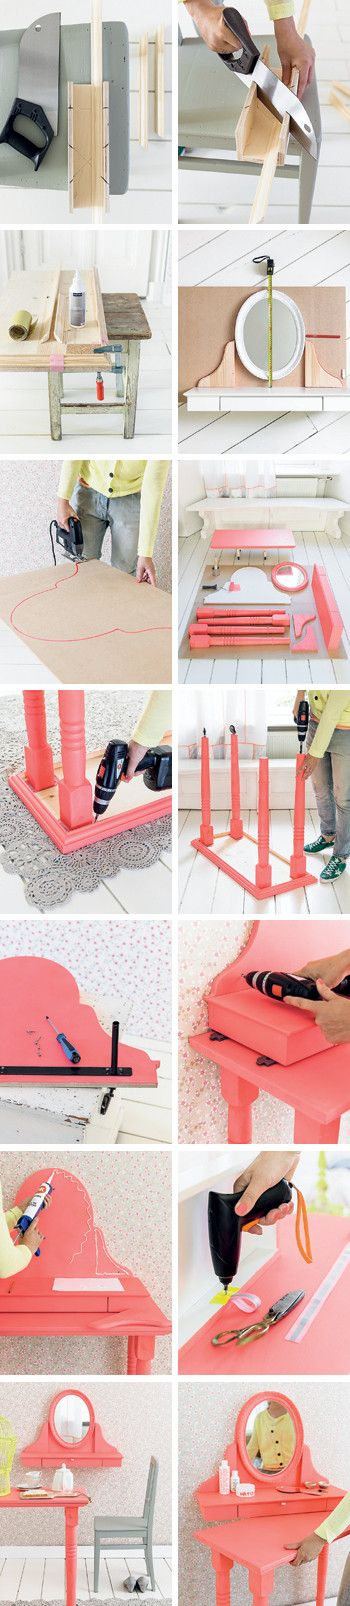 Vanity for girls room that converts into table for crafts or tea time